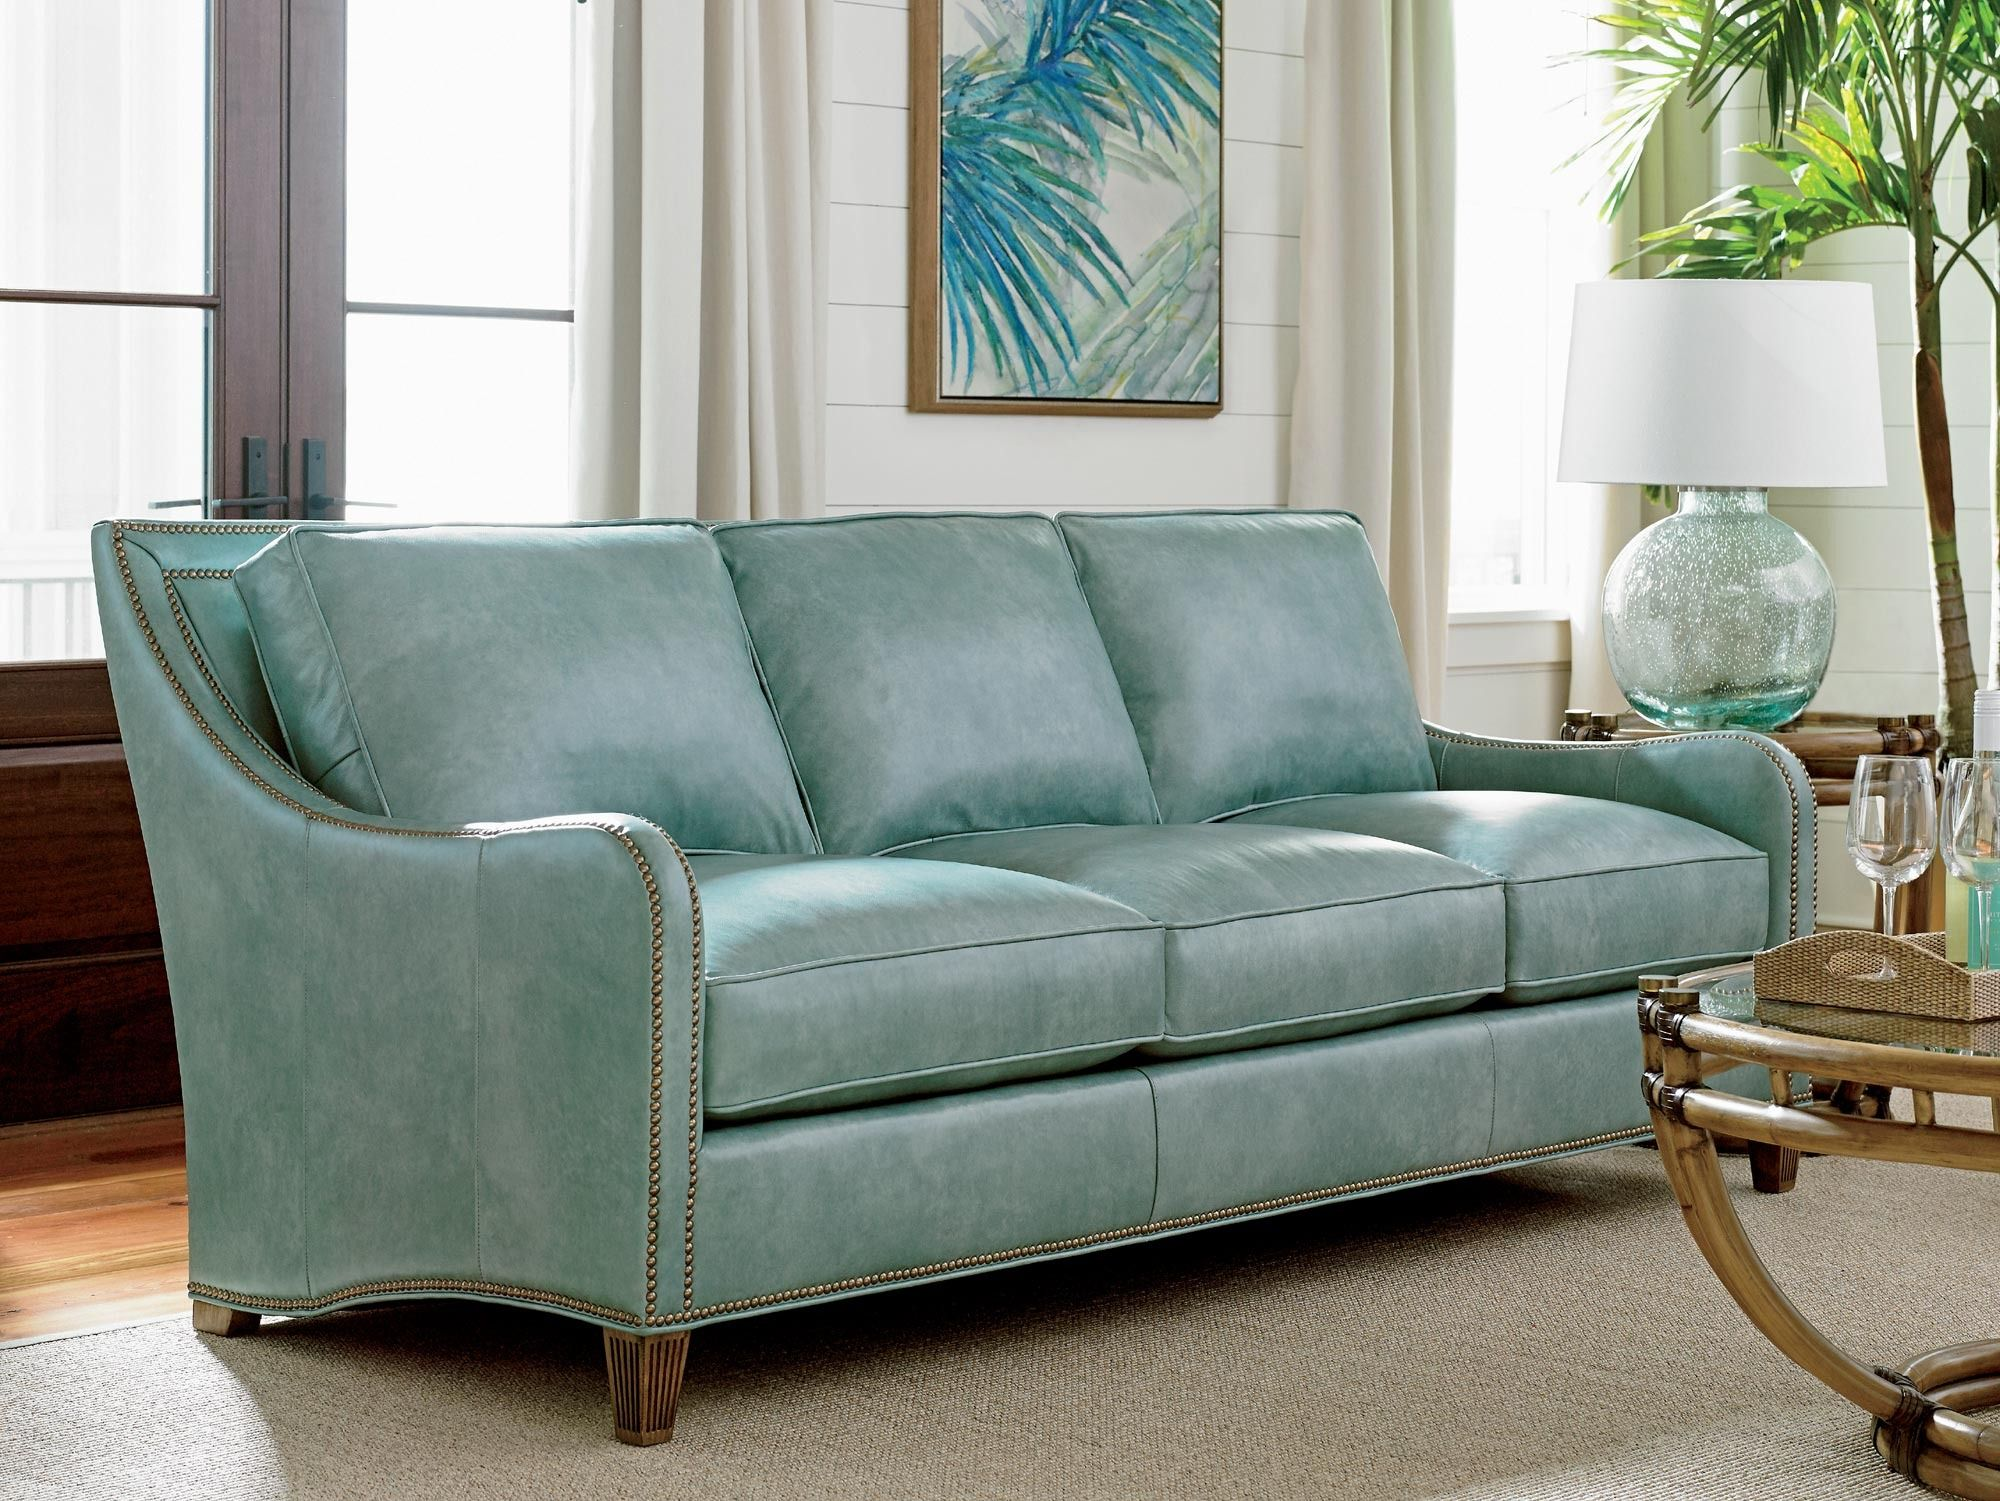 Twin Palms Koko Leather Sofa In Teal Tommy Bahama Home Home Gallery Stores Blue Leather Sofa Living Room Sets Furniture